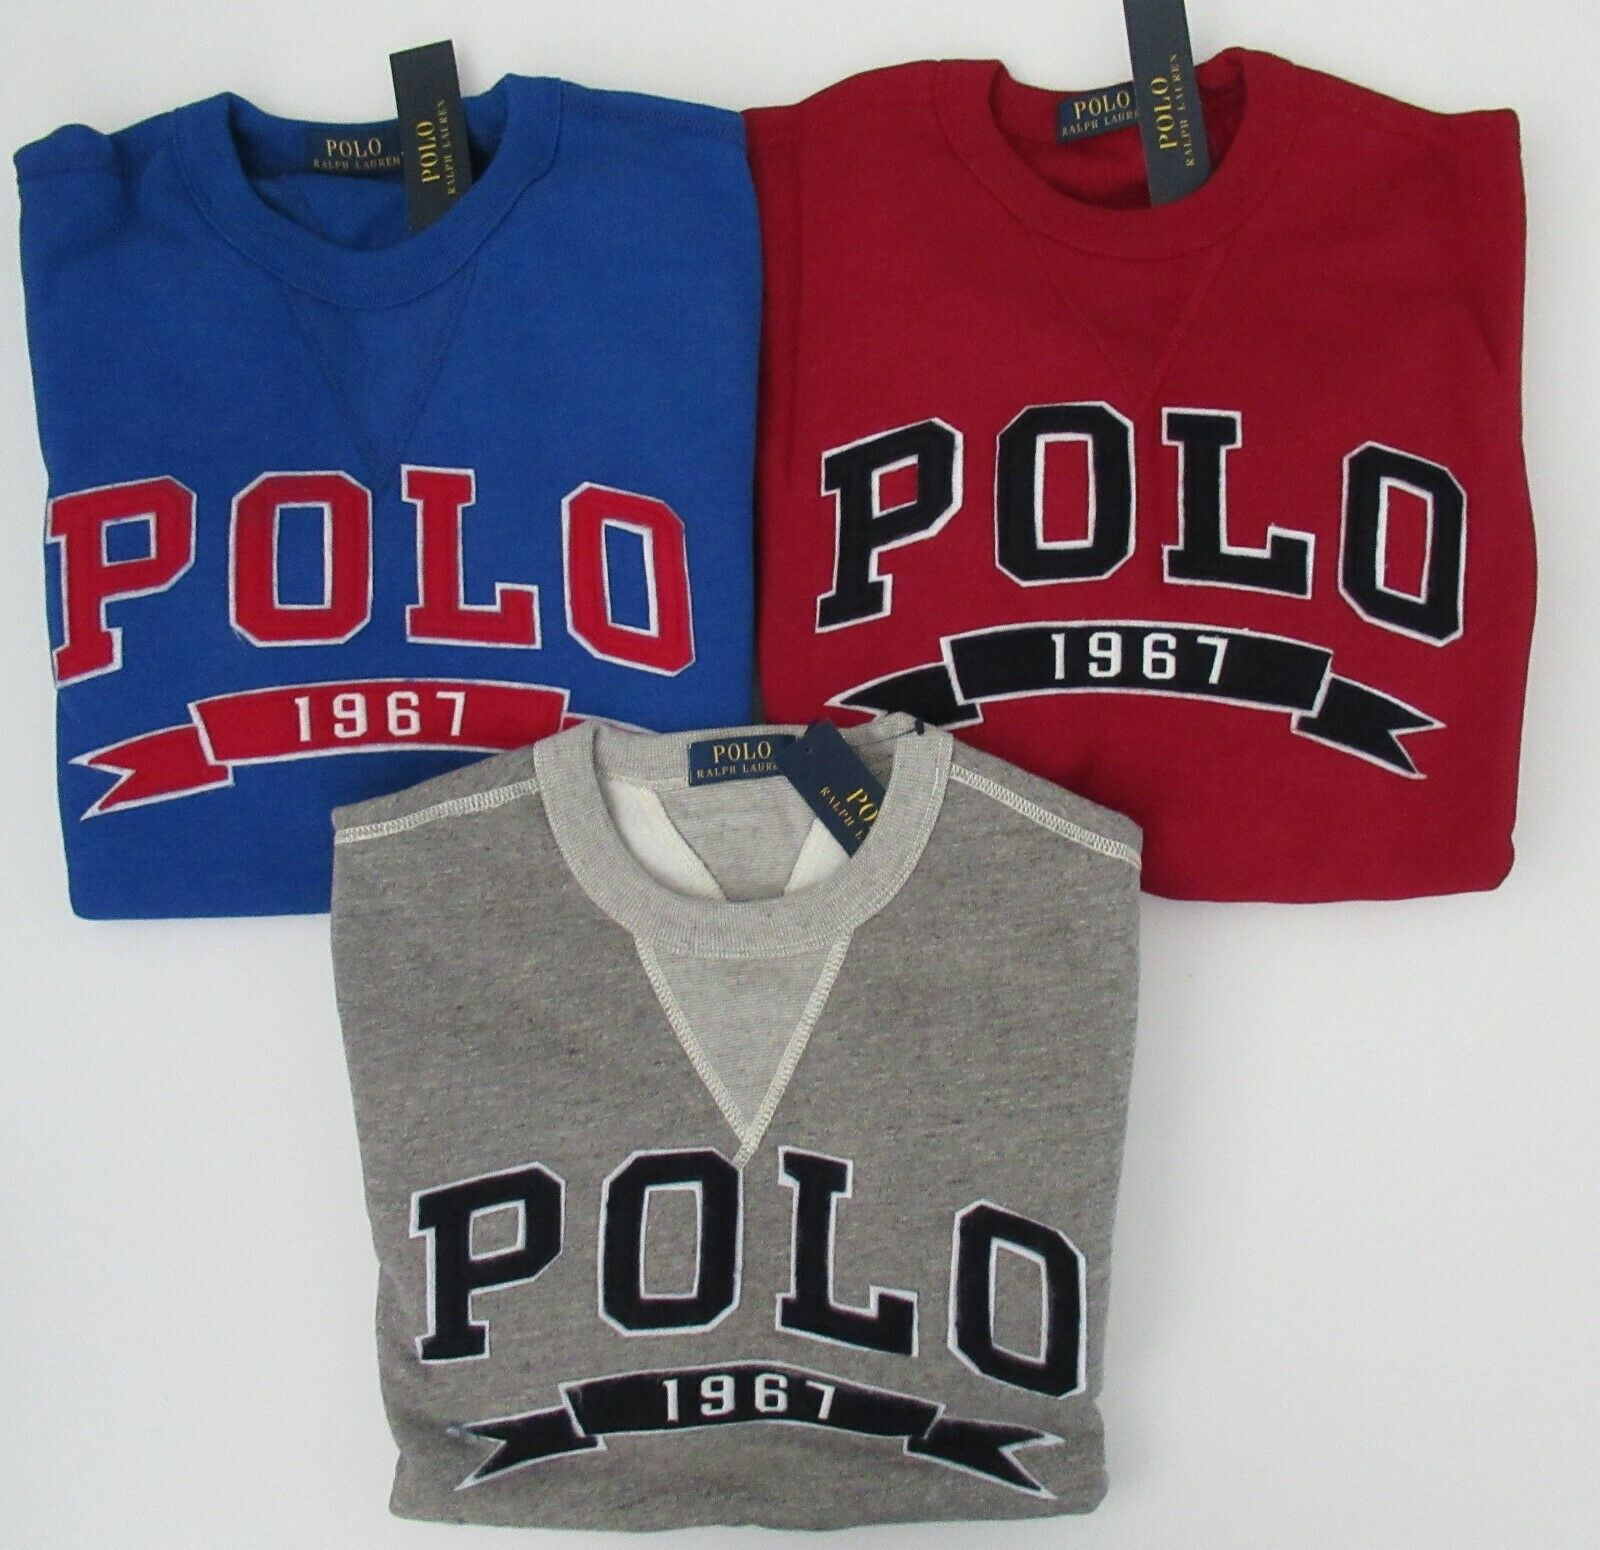 NWT Ralph Lauren LS POLO Logo Cotton Blend Fleece Sweatshirt M L XL 2XL NEW